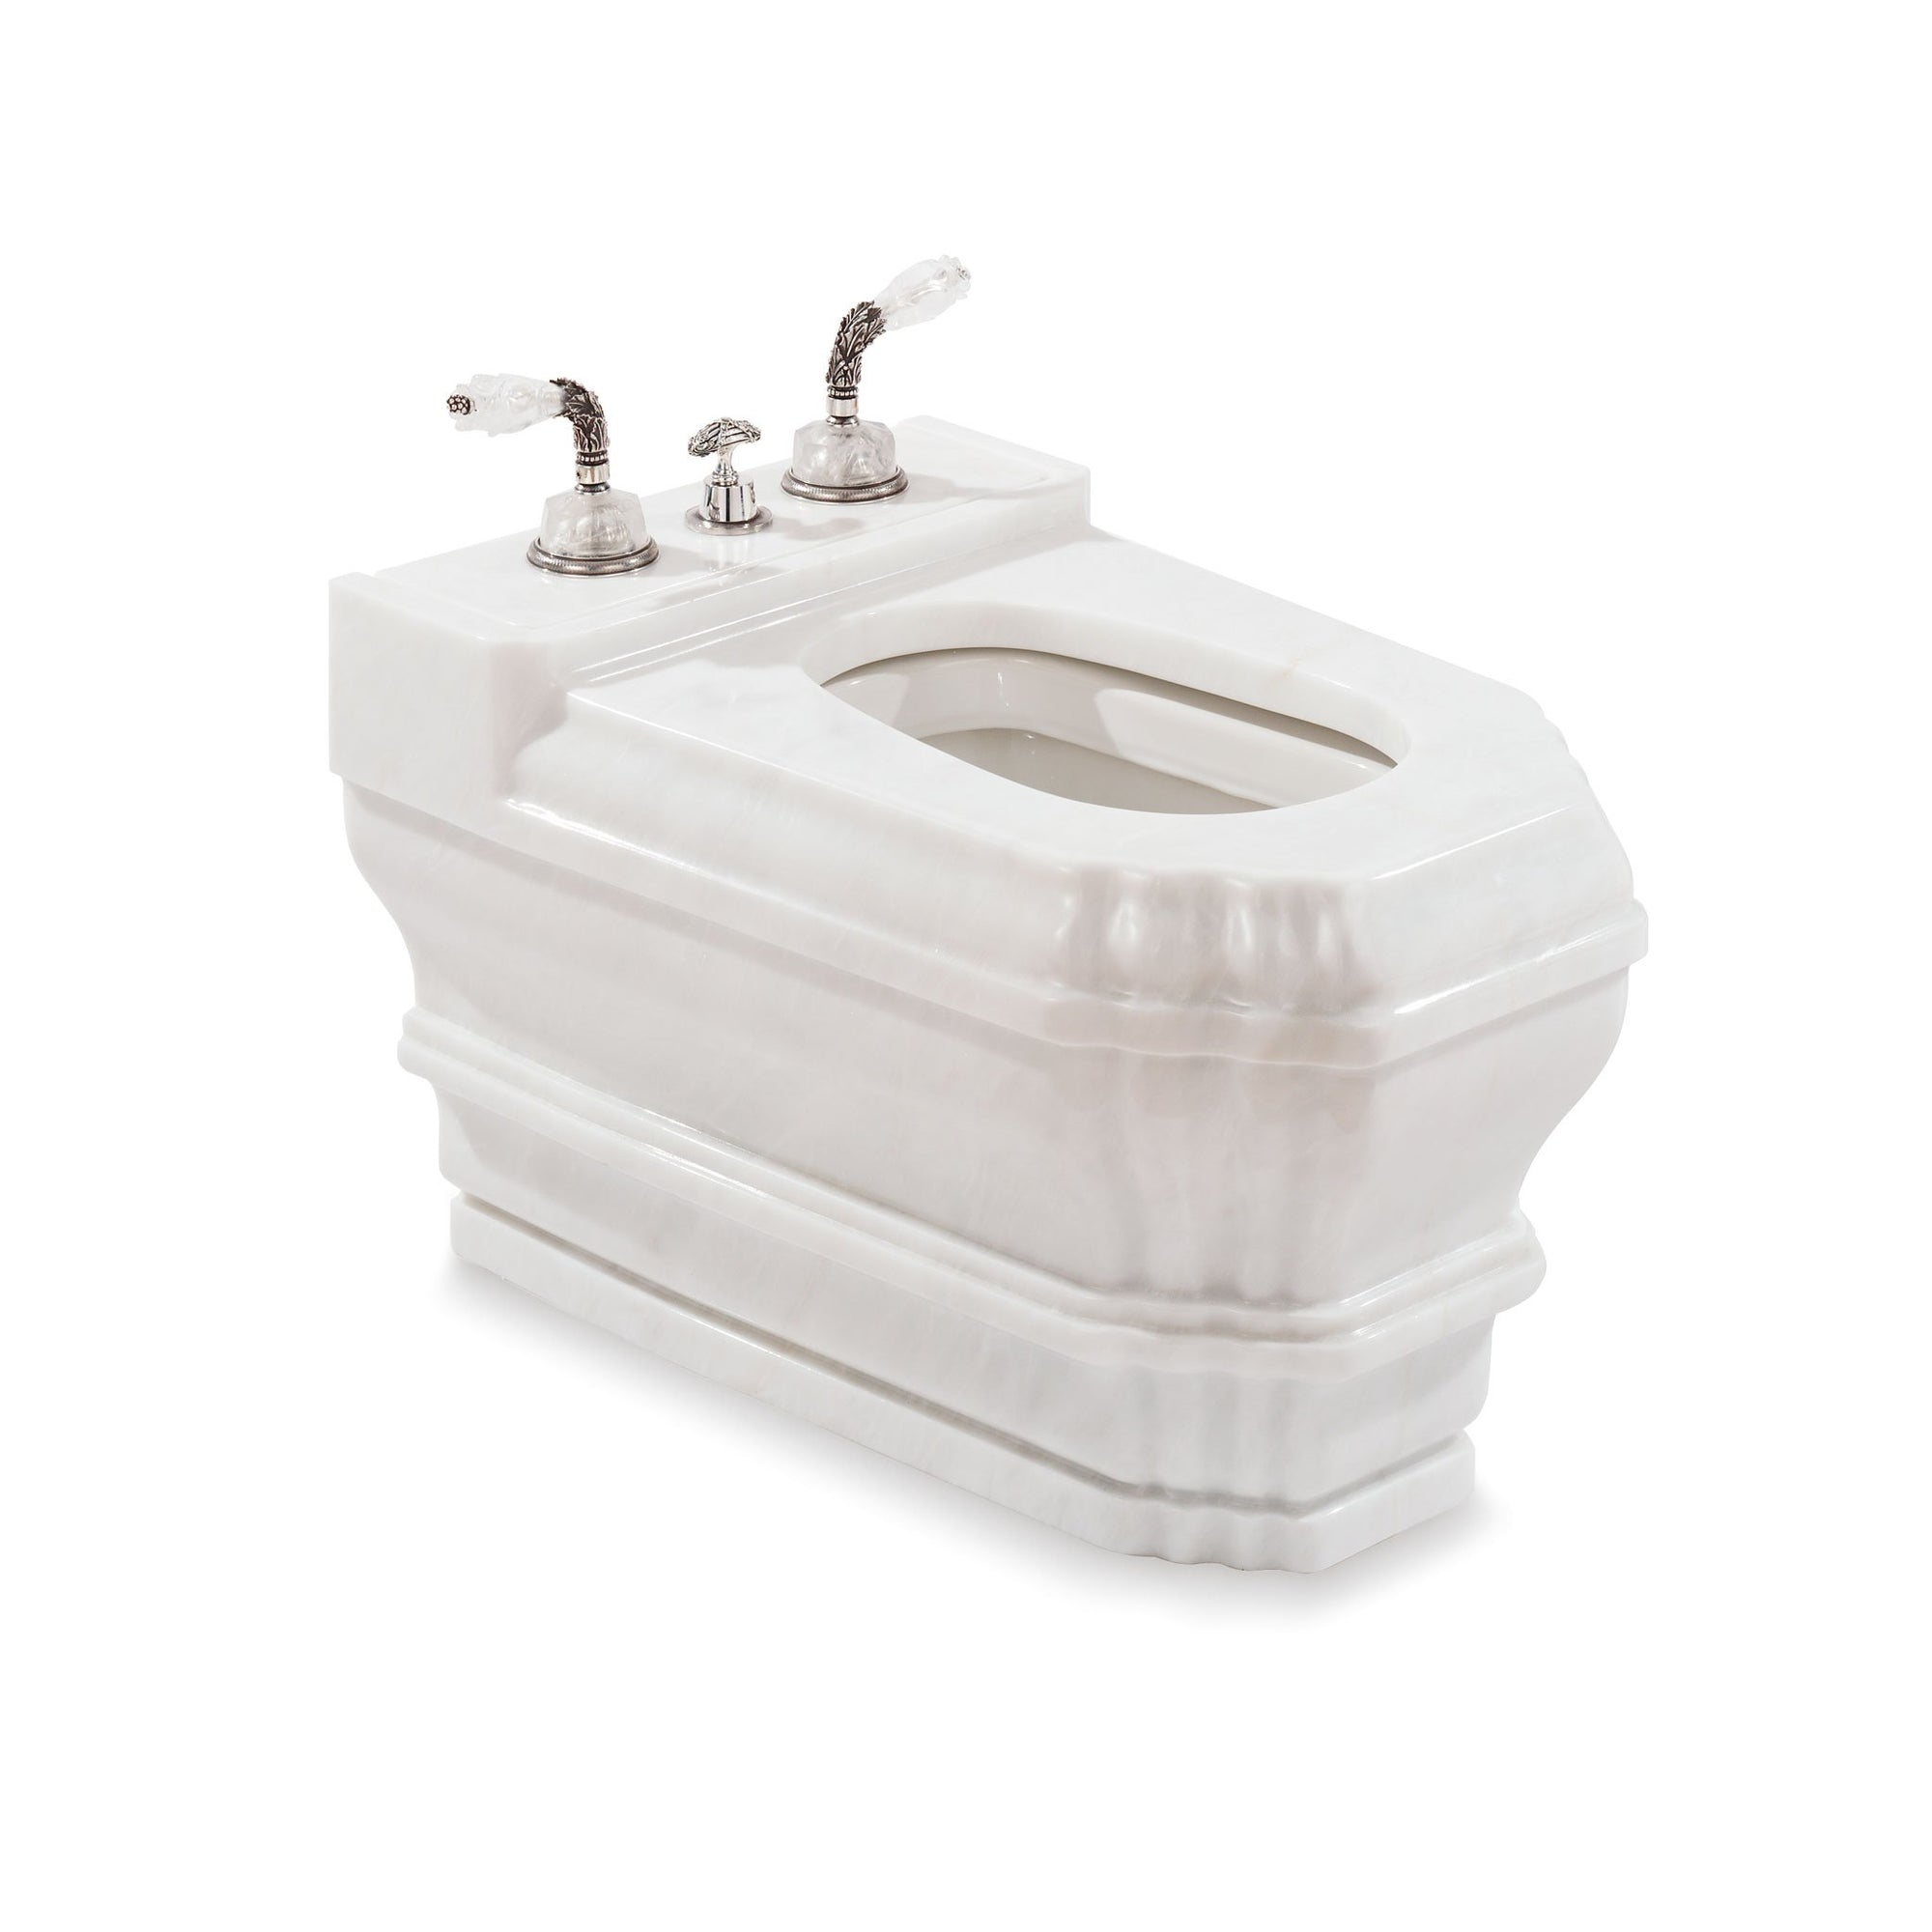 0241BDT-RSAU Sherle Wagner International Rose Aurora Georgian Bidet Casing Large